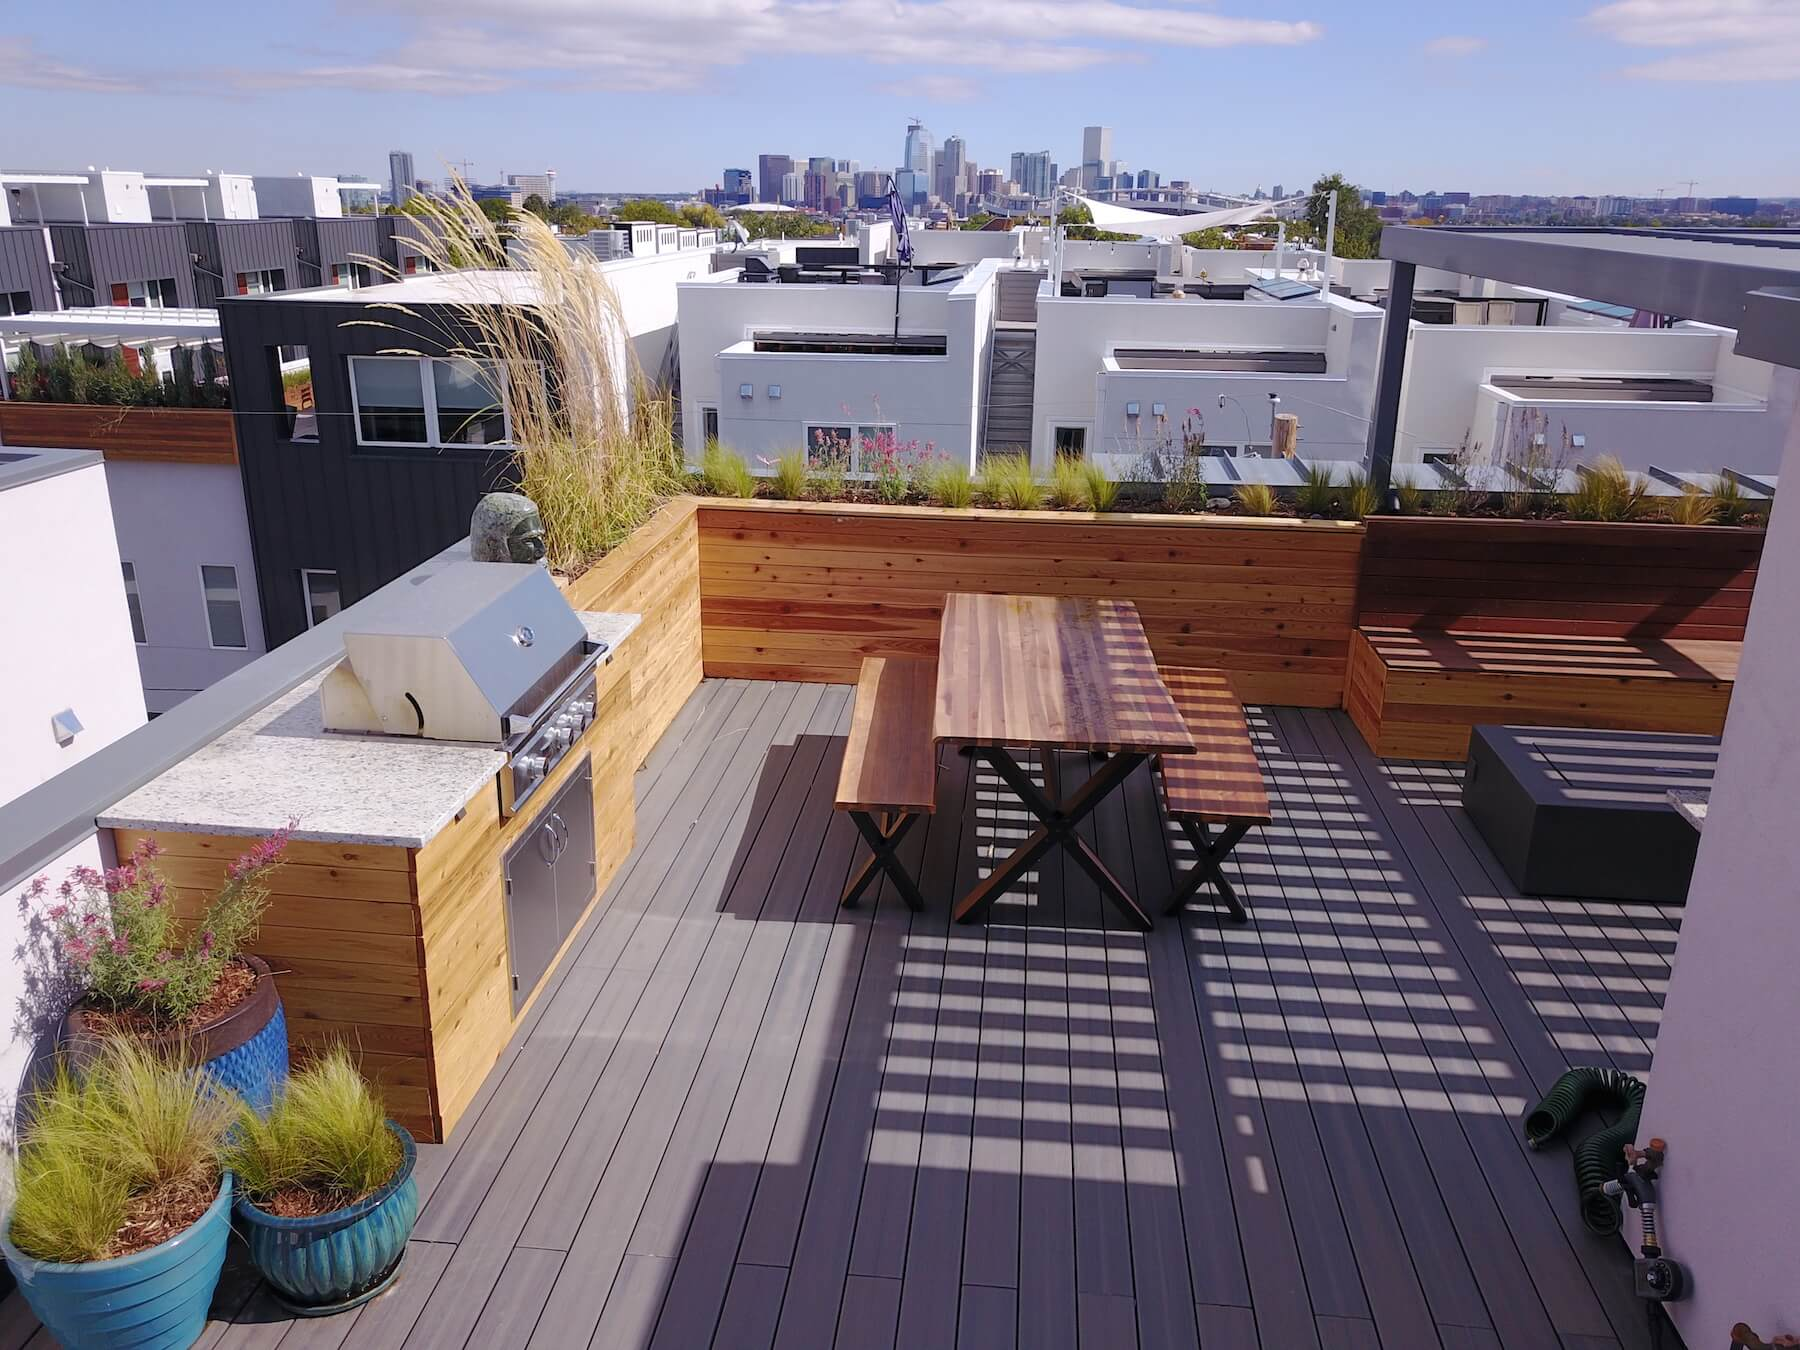 Roof Deck Planters Outdoor furniture Pergola Sloans Lake Denver CO Roof Deck and Garden